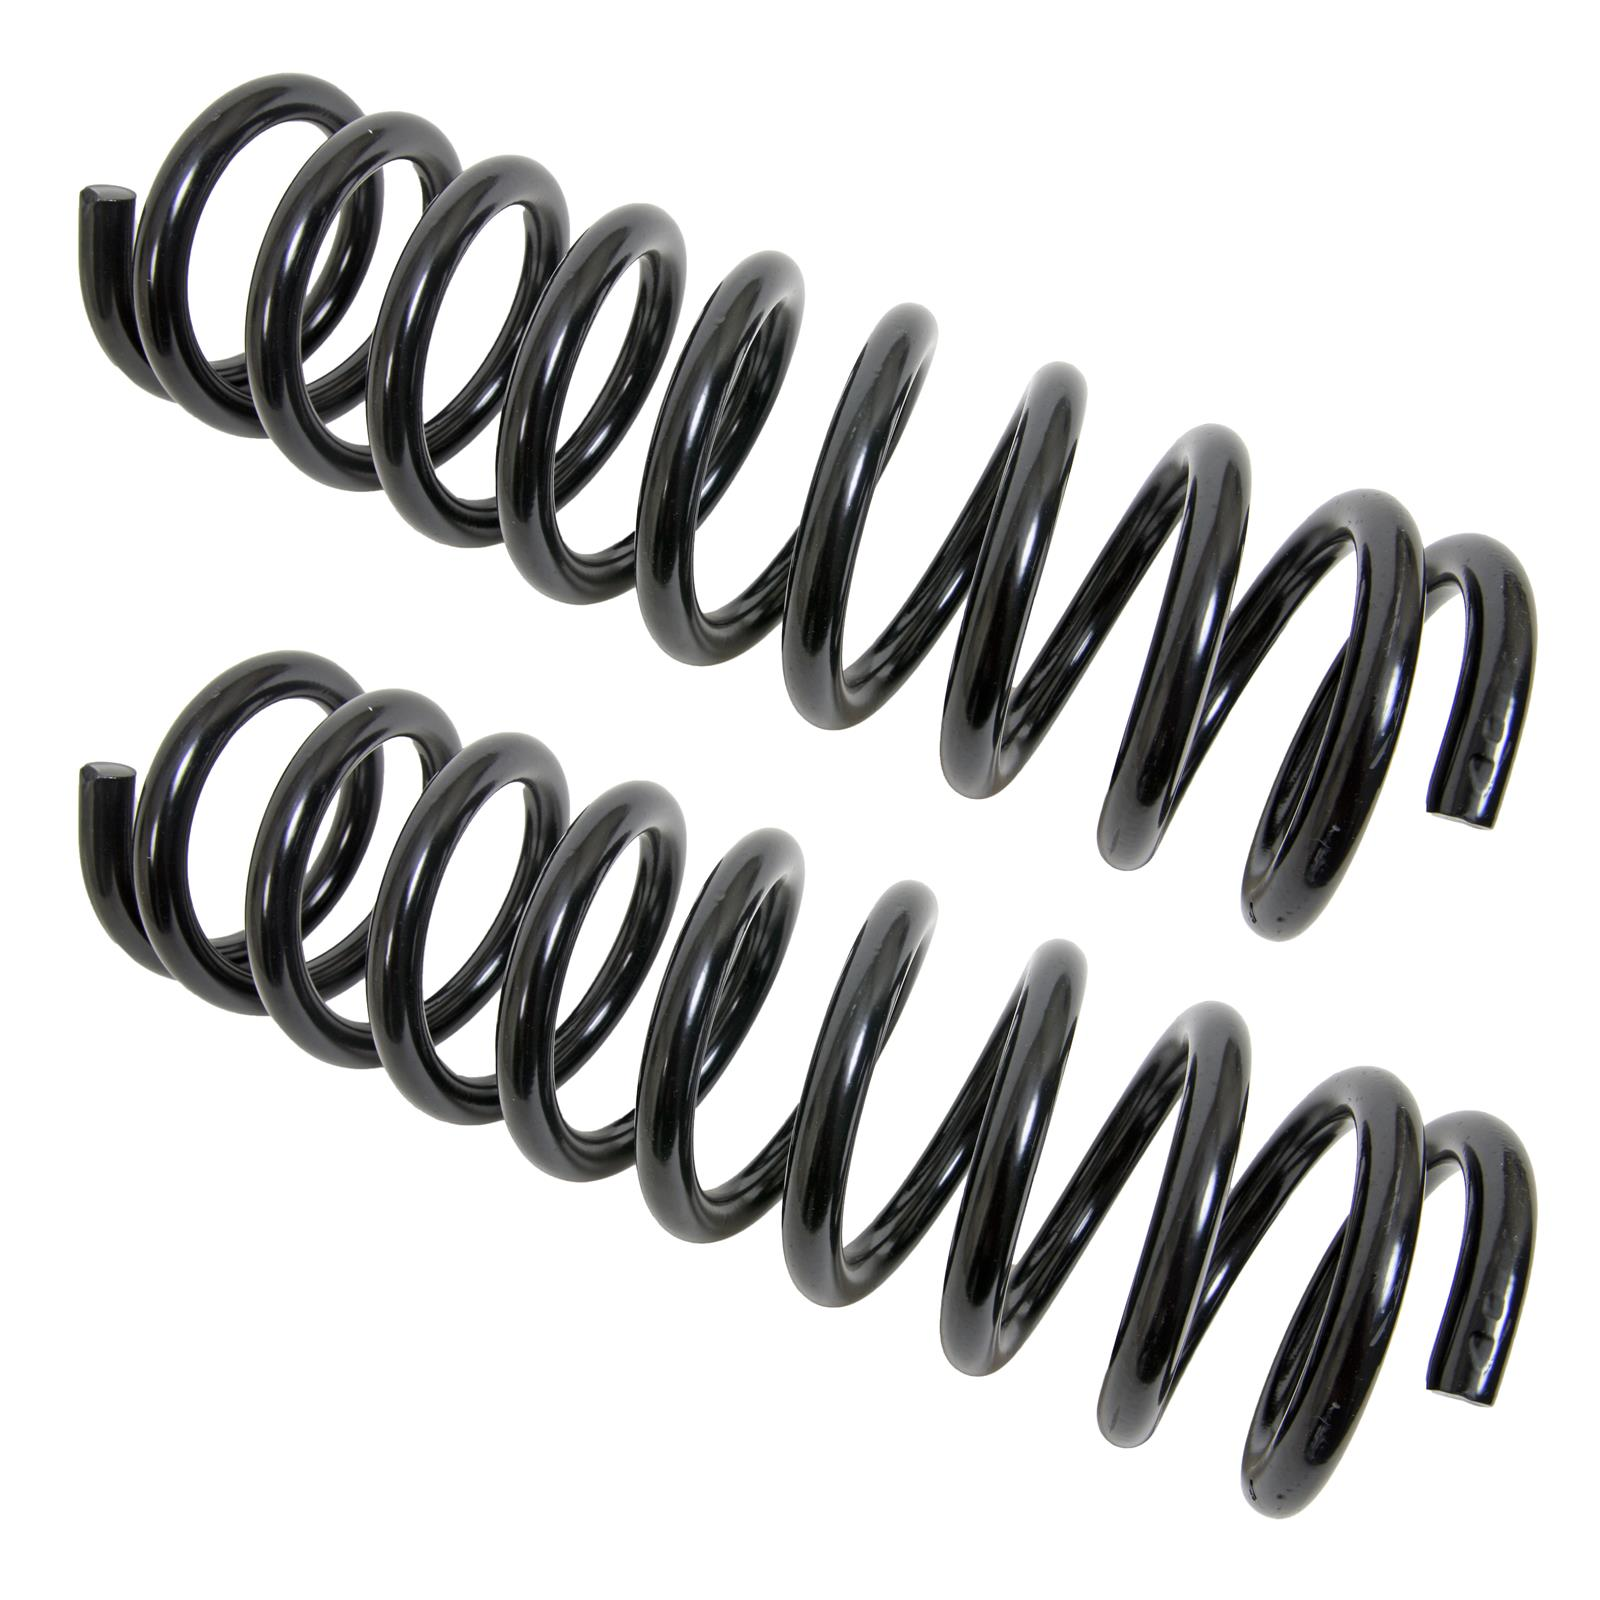 Moog replacement coil springs cs638 free shipping on orders over moog replacement coil springs cs638 free shipping on orders over 99 at summit racing sciox Gallery